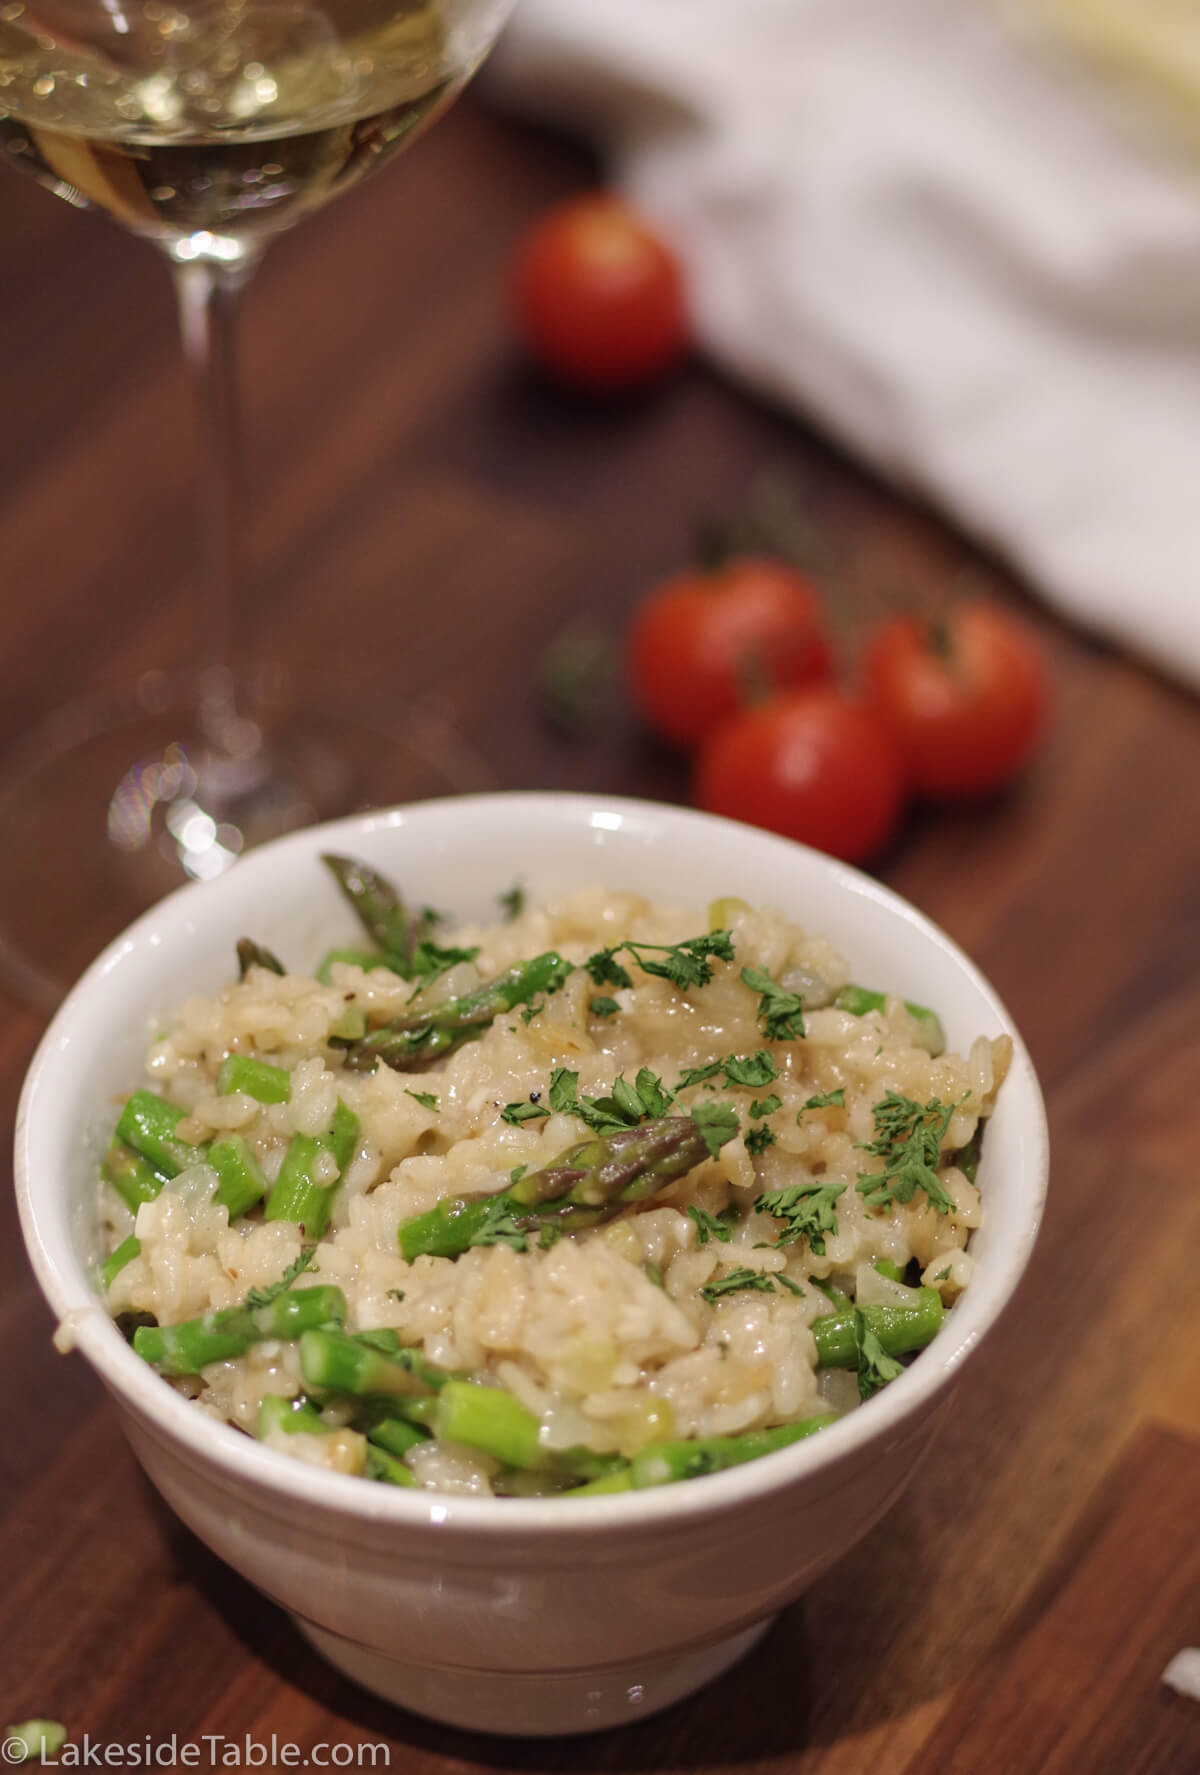 Lemon Asparagus Risotto Recipe - A real treat and super easy. I love this one! | www.lakesidetable.com